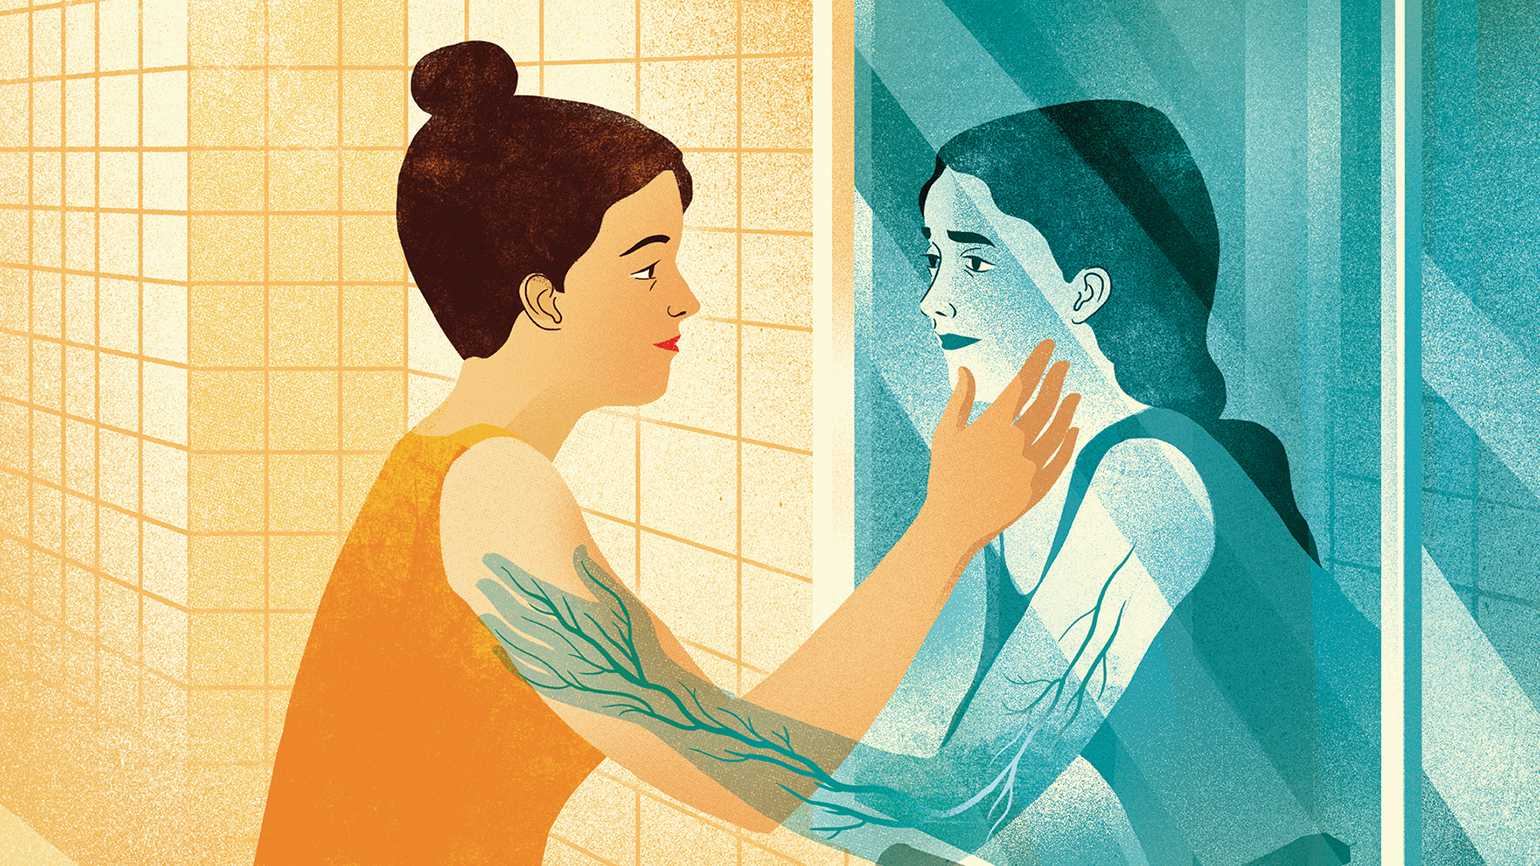 An artist's rendering of a woman gazing into a mirror at a loved one who shares her pain